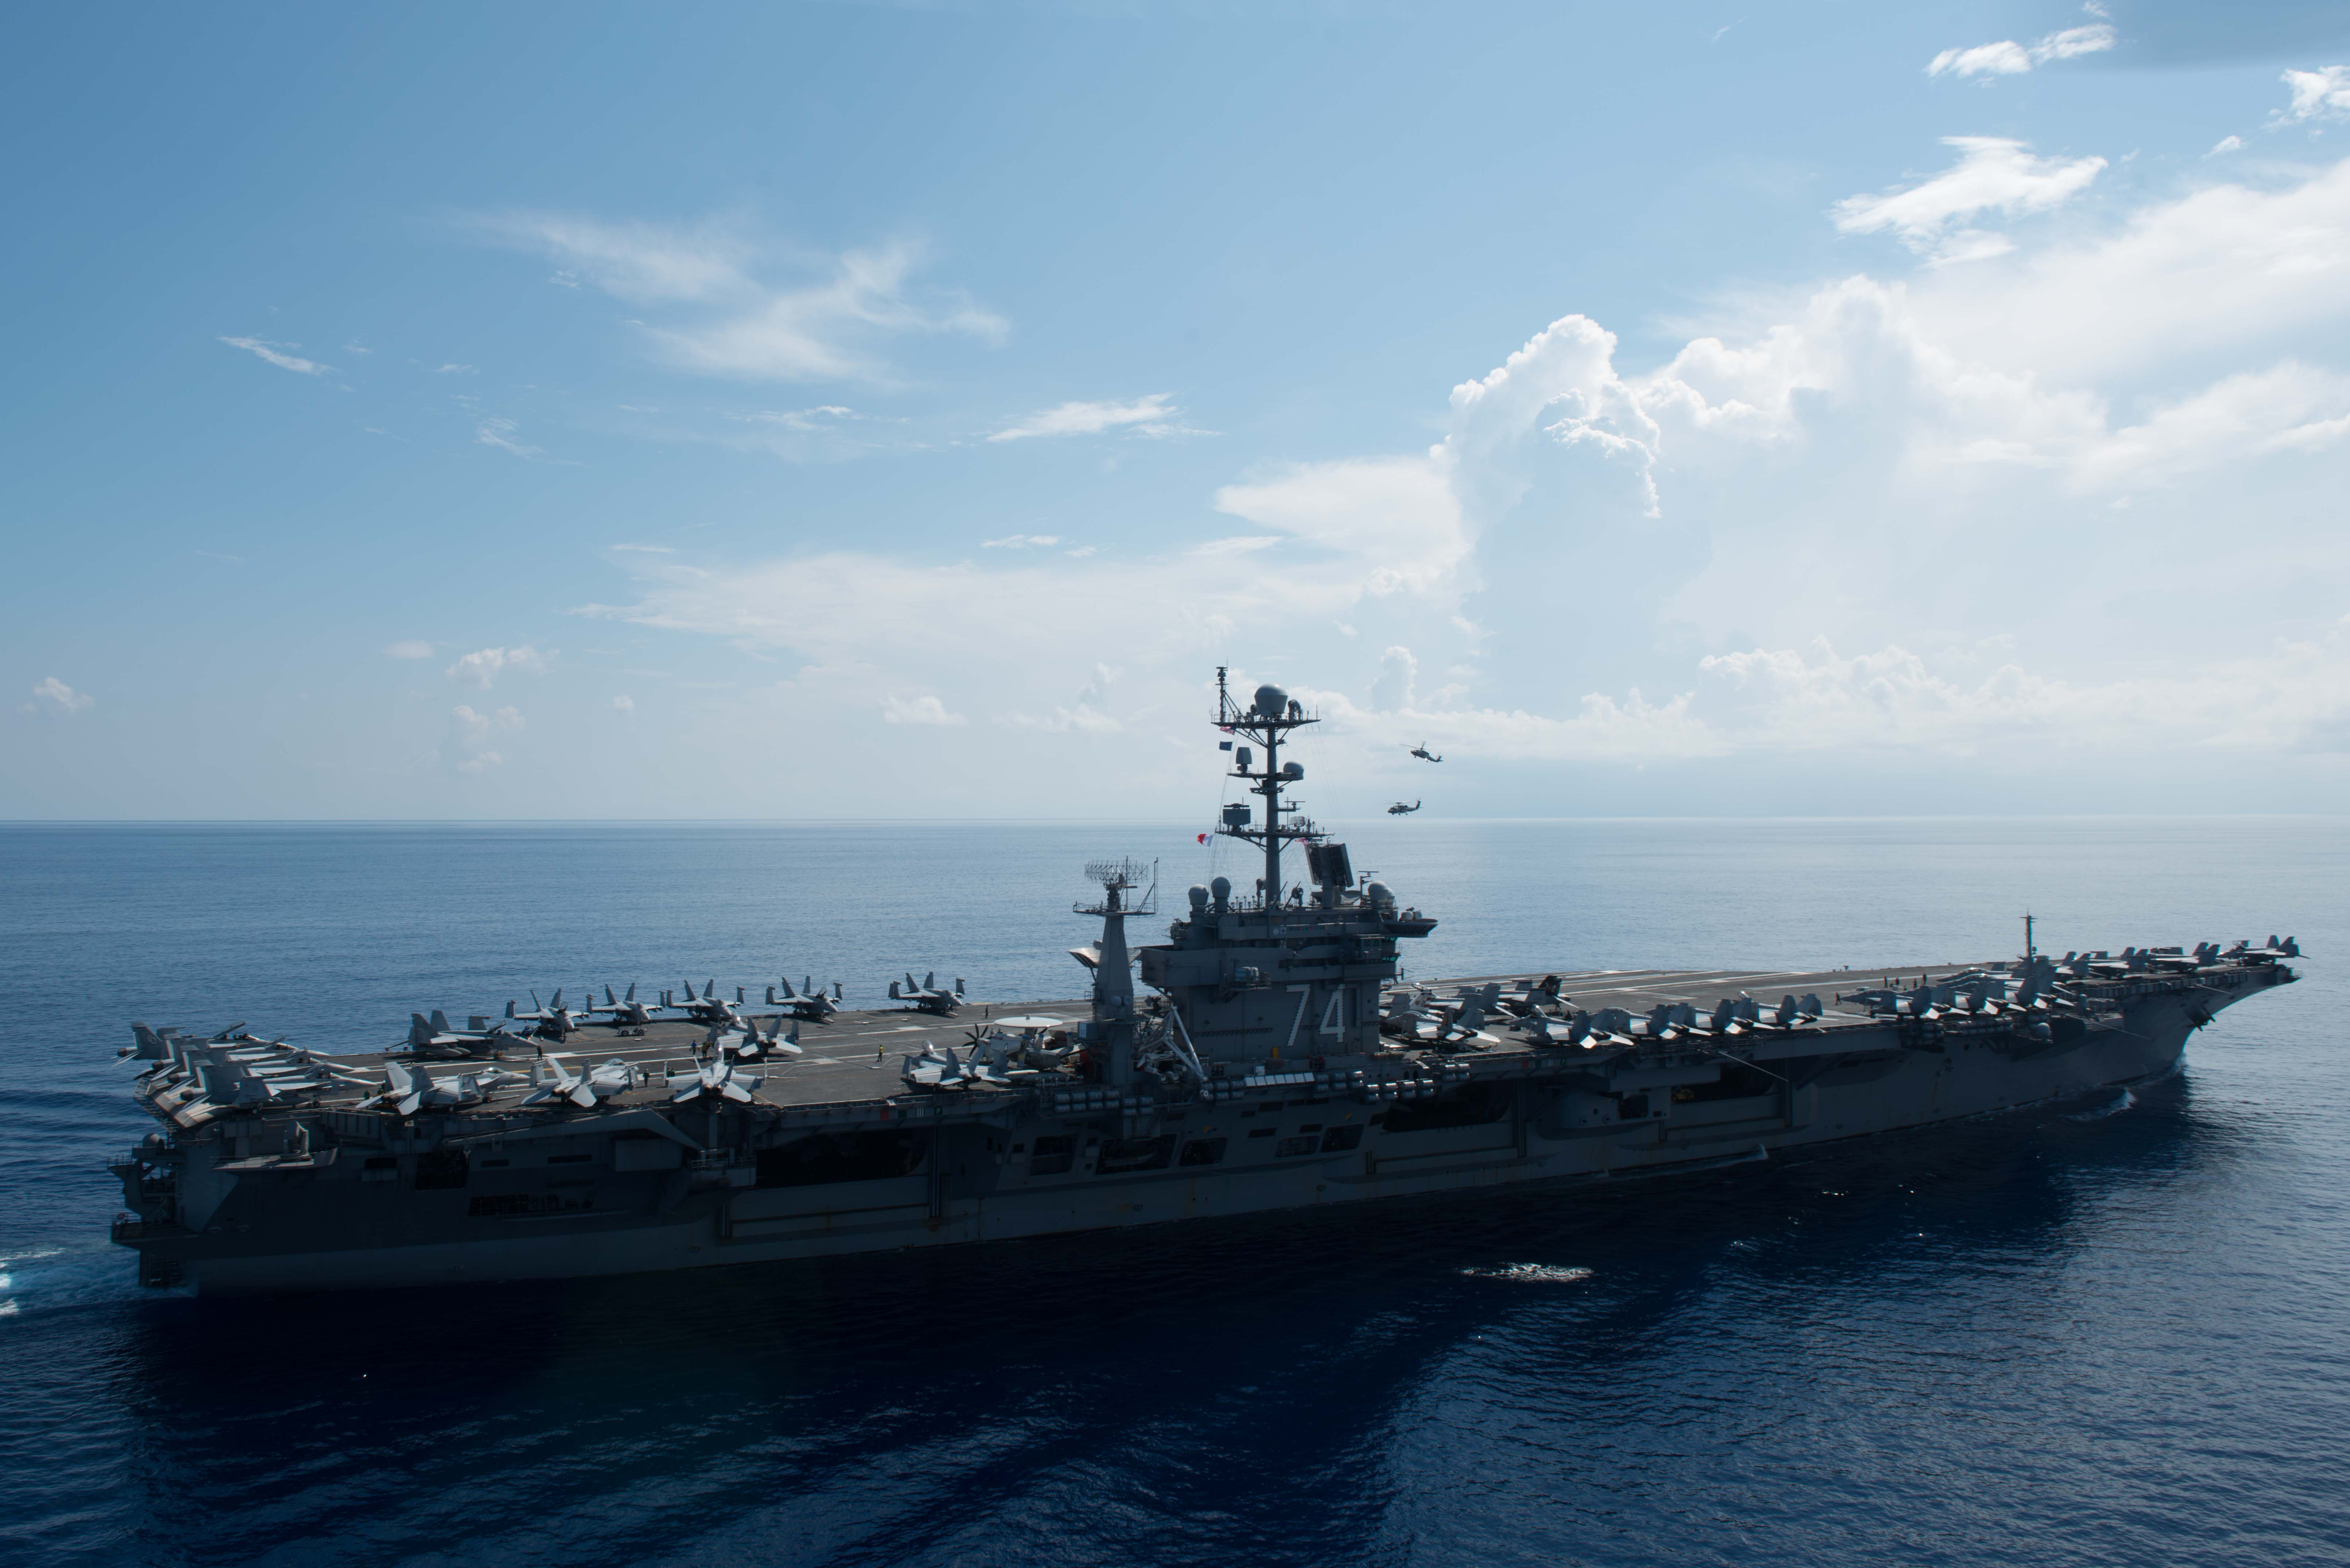 USS John C. Stennis (CVN-74) on May 20, 2016. US Navy